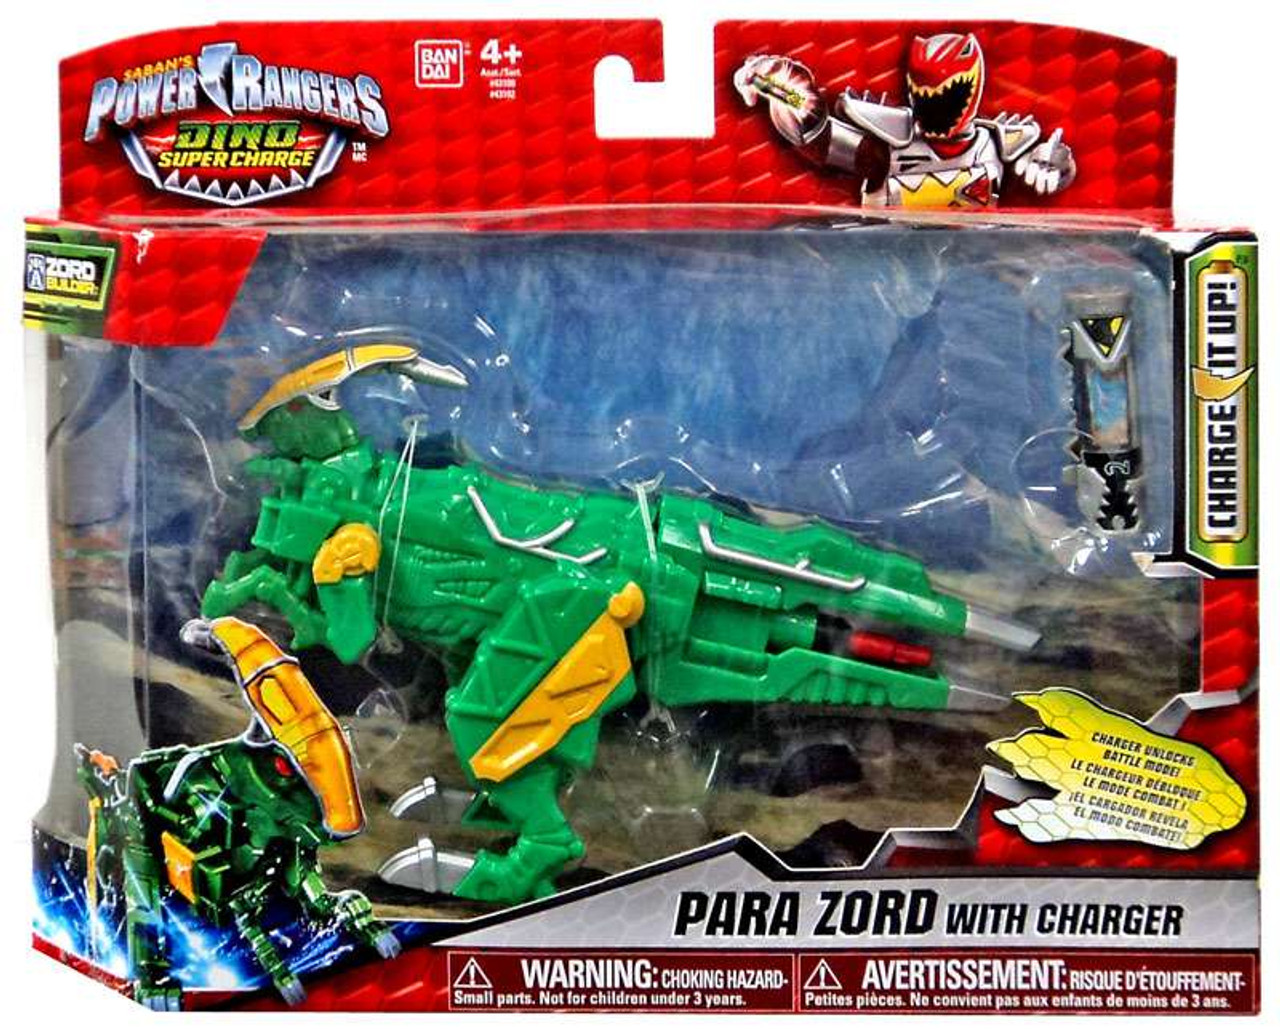 Ammonite Zord Action Figure with Charger Power Rangers Dino Super Charge